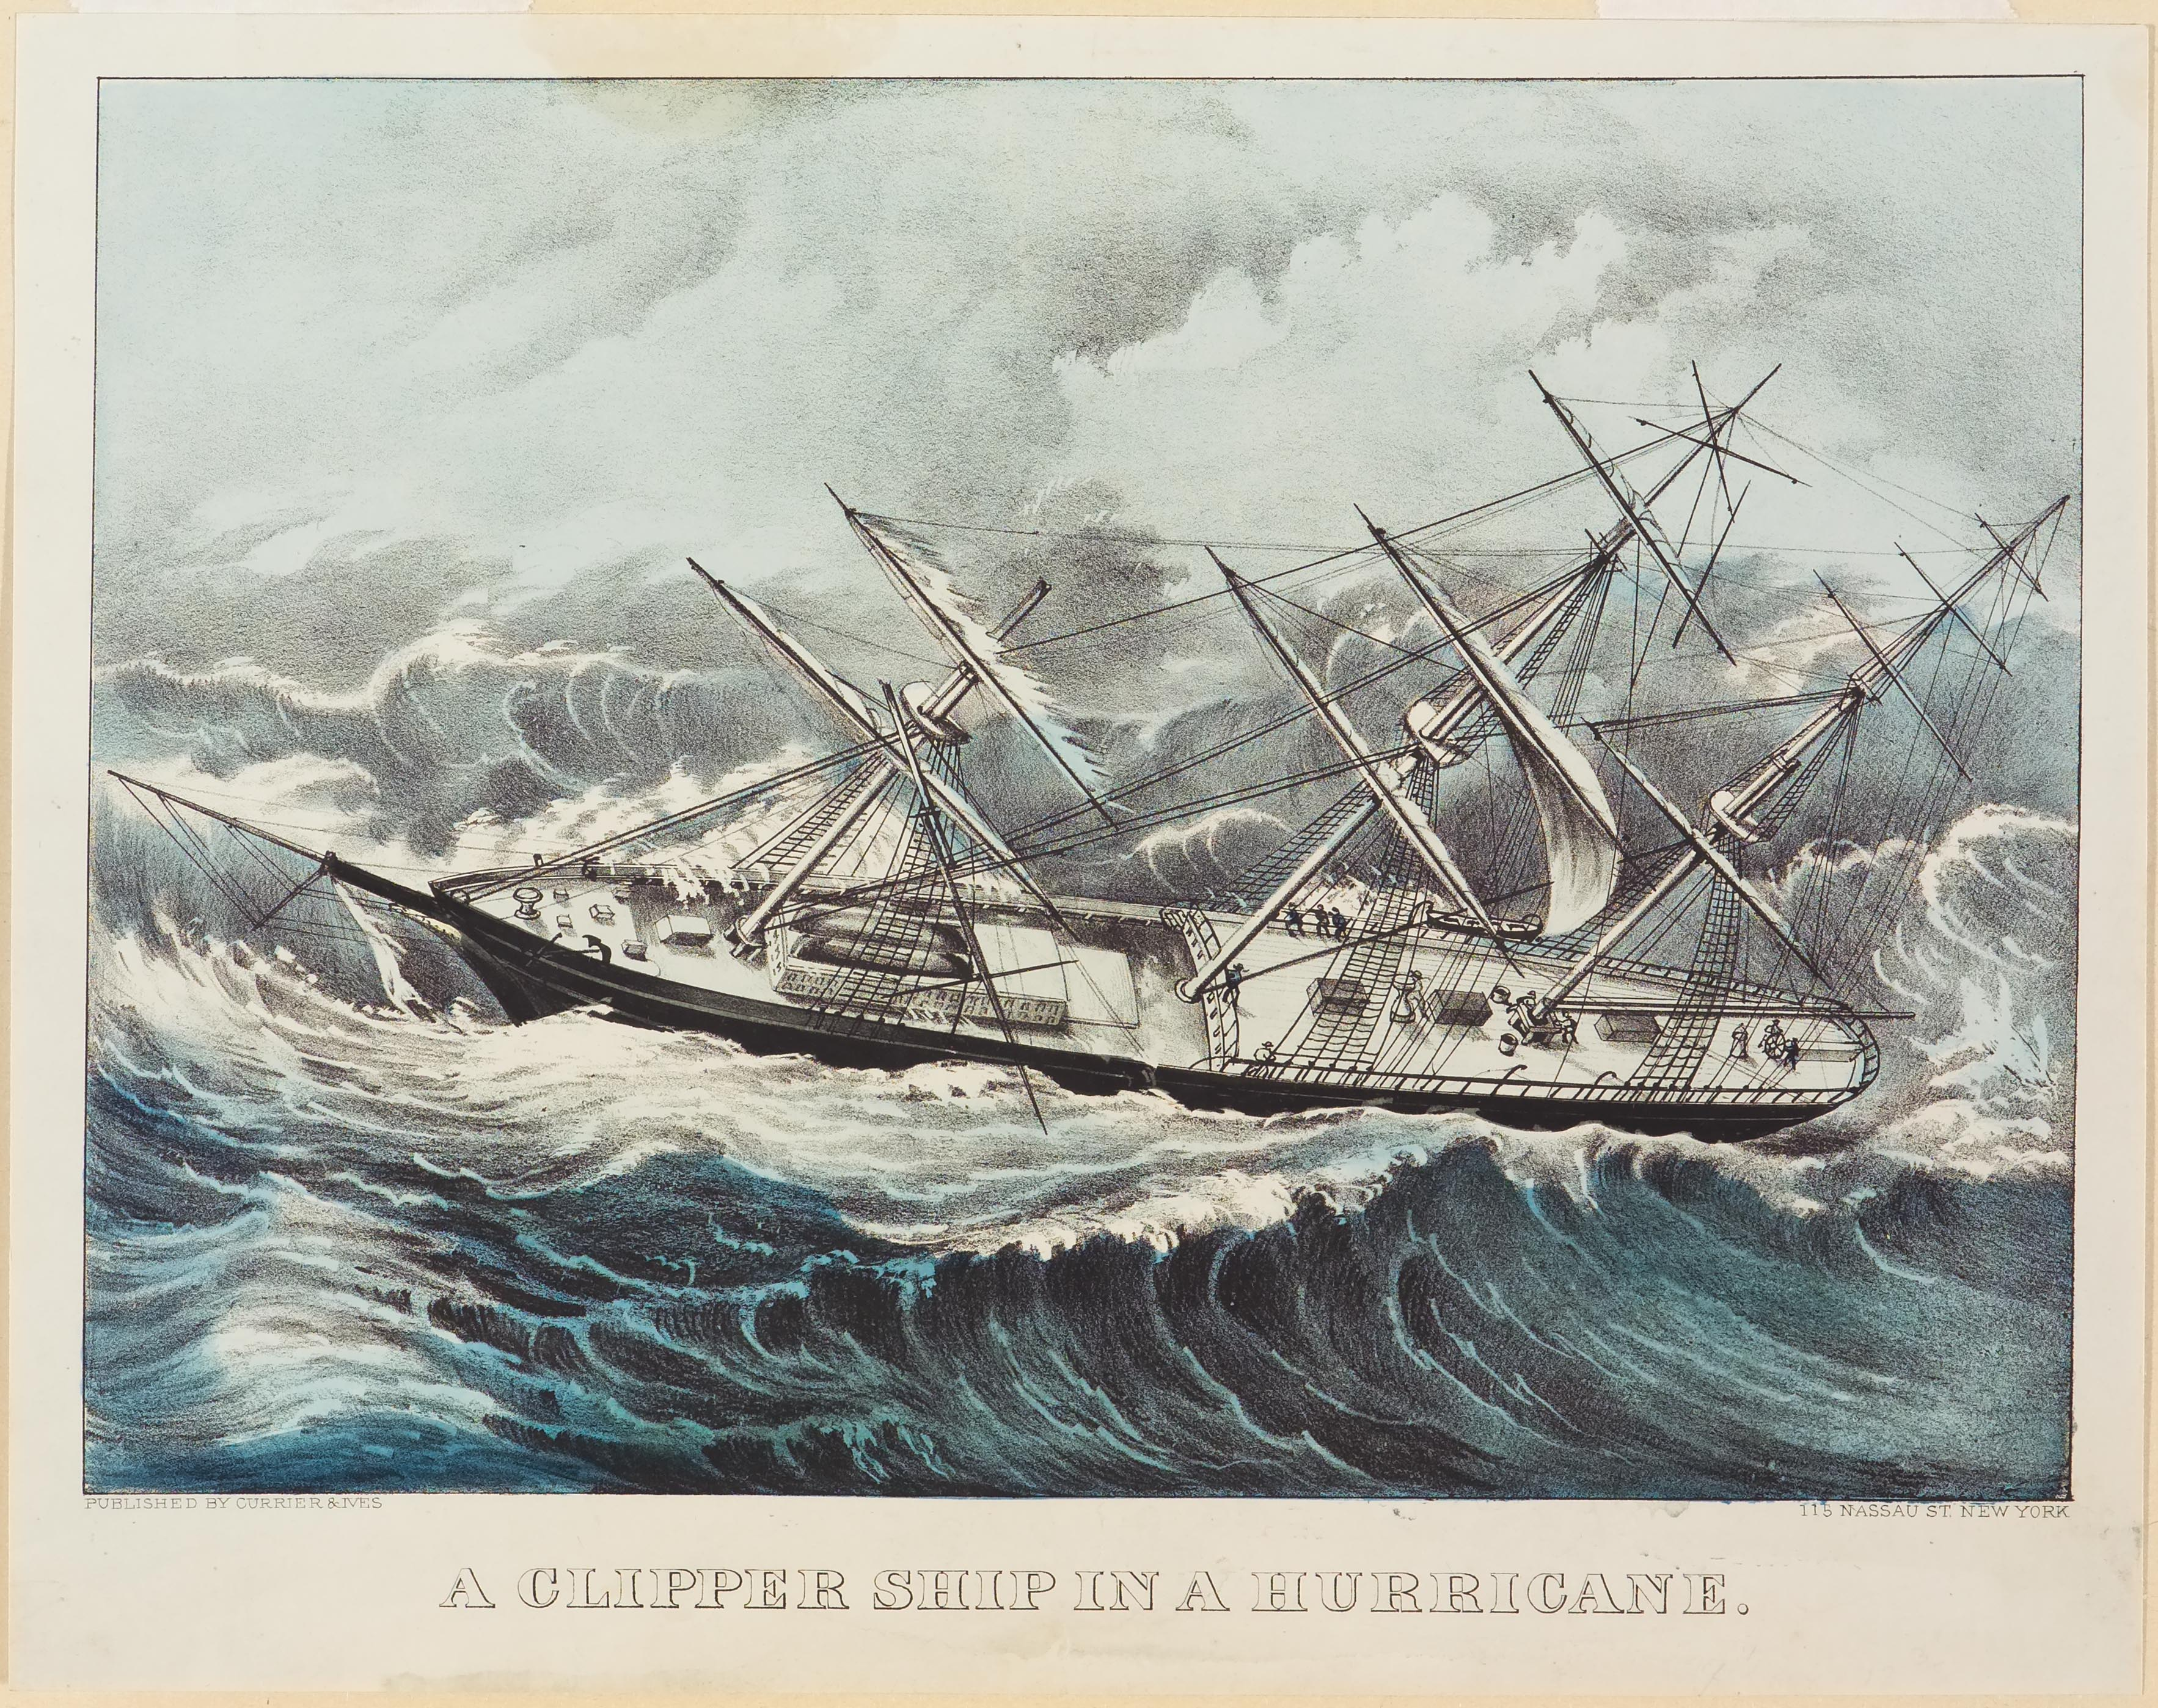 Clipper ship sailing left in image